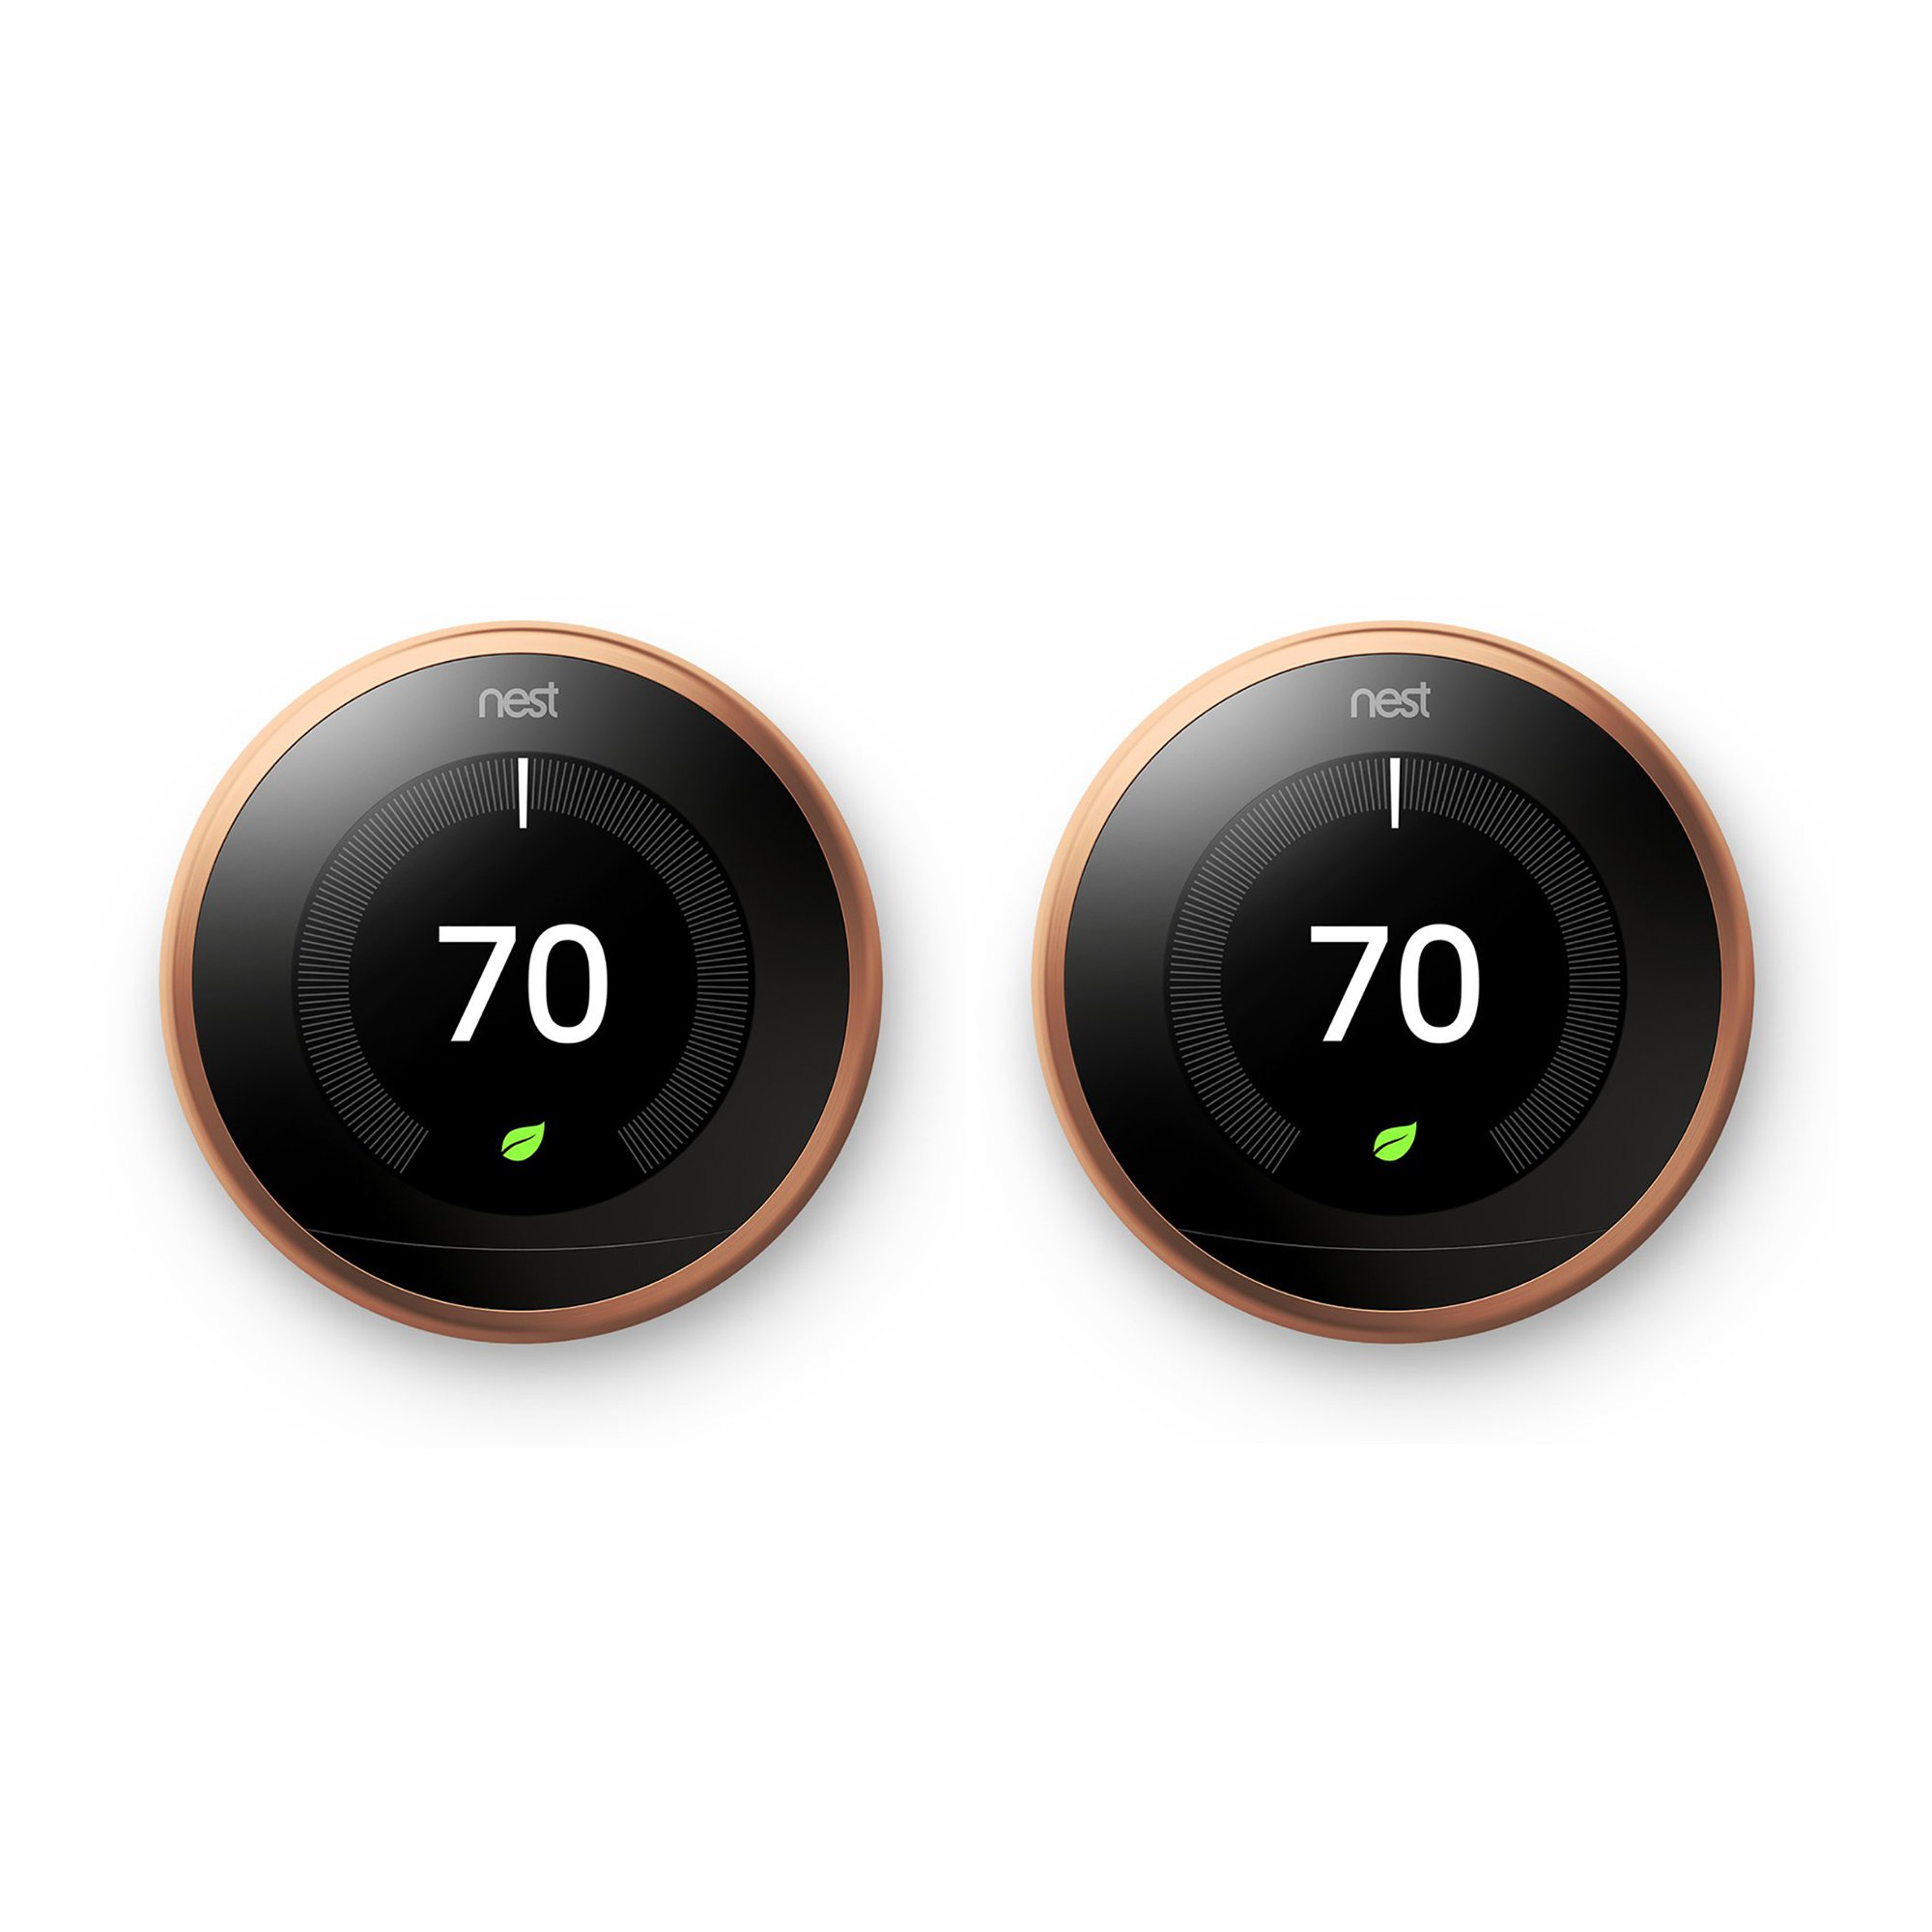 Nest Learning Smart Thermostat 3rd Generation Home/Office Wifi, Copper (2 Pack)